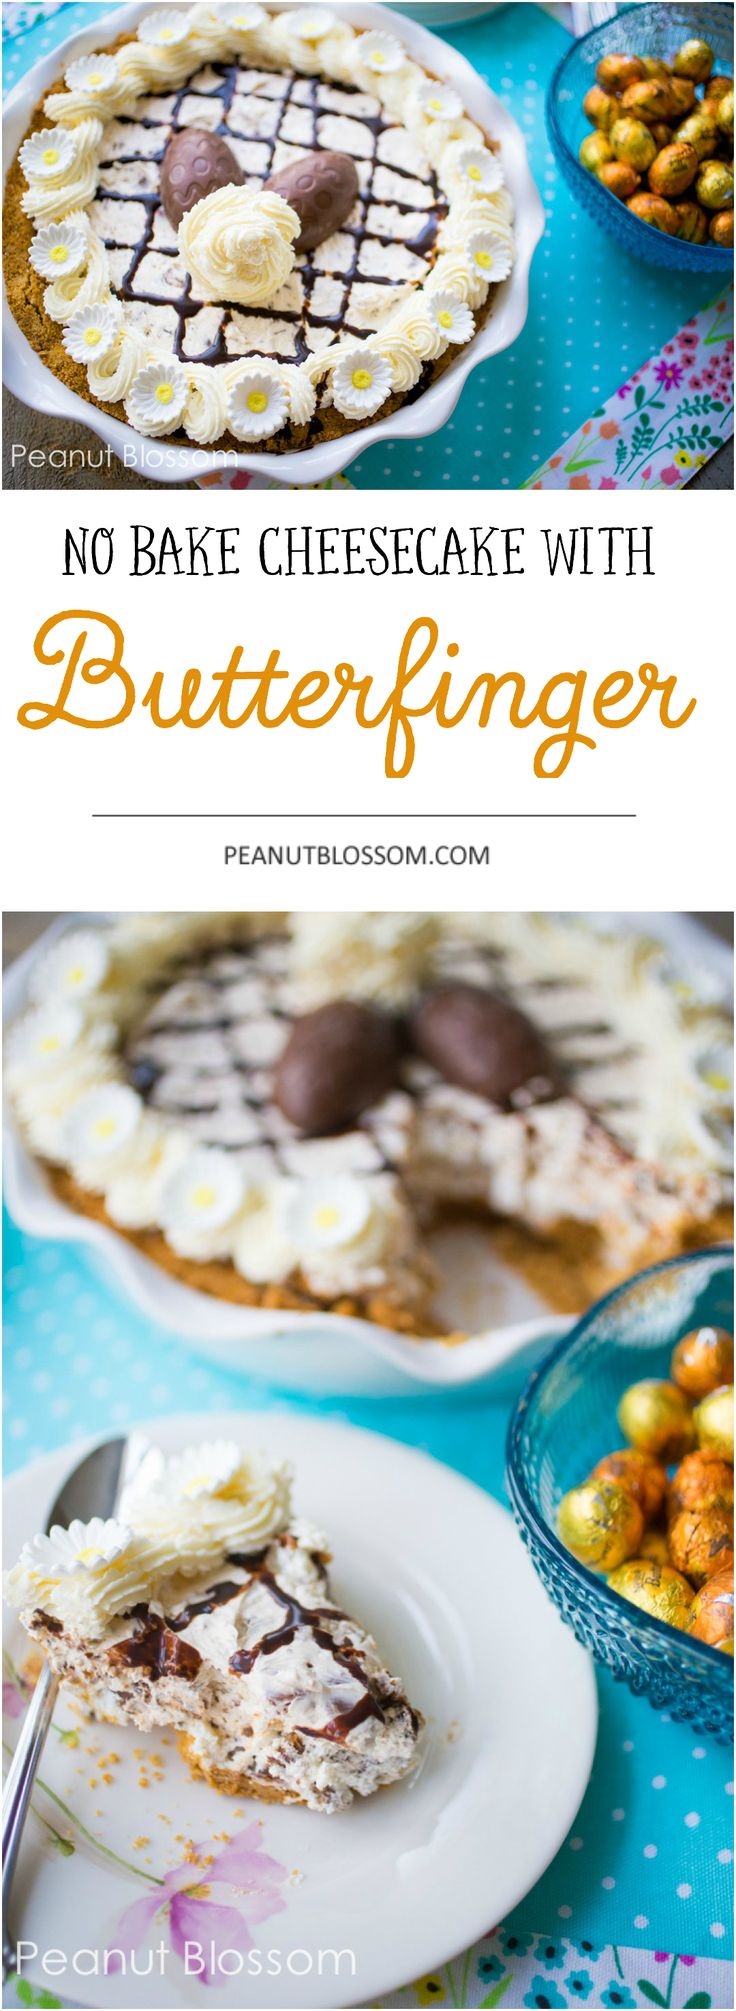 Easy Butterfinger no bake cheesecake recipe for Easter! Look at those adorable bunny feet and that whipped cream tail! Takes just minutes to whip together and chills in the fridge until it's time to serve. Fully of crunchy peanut buttery Butterfingers.